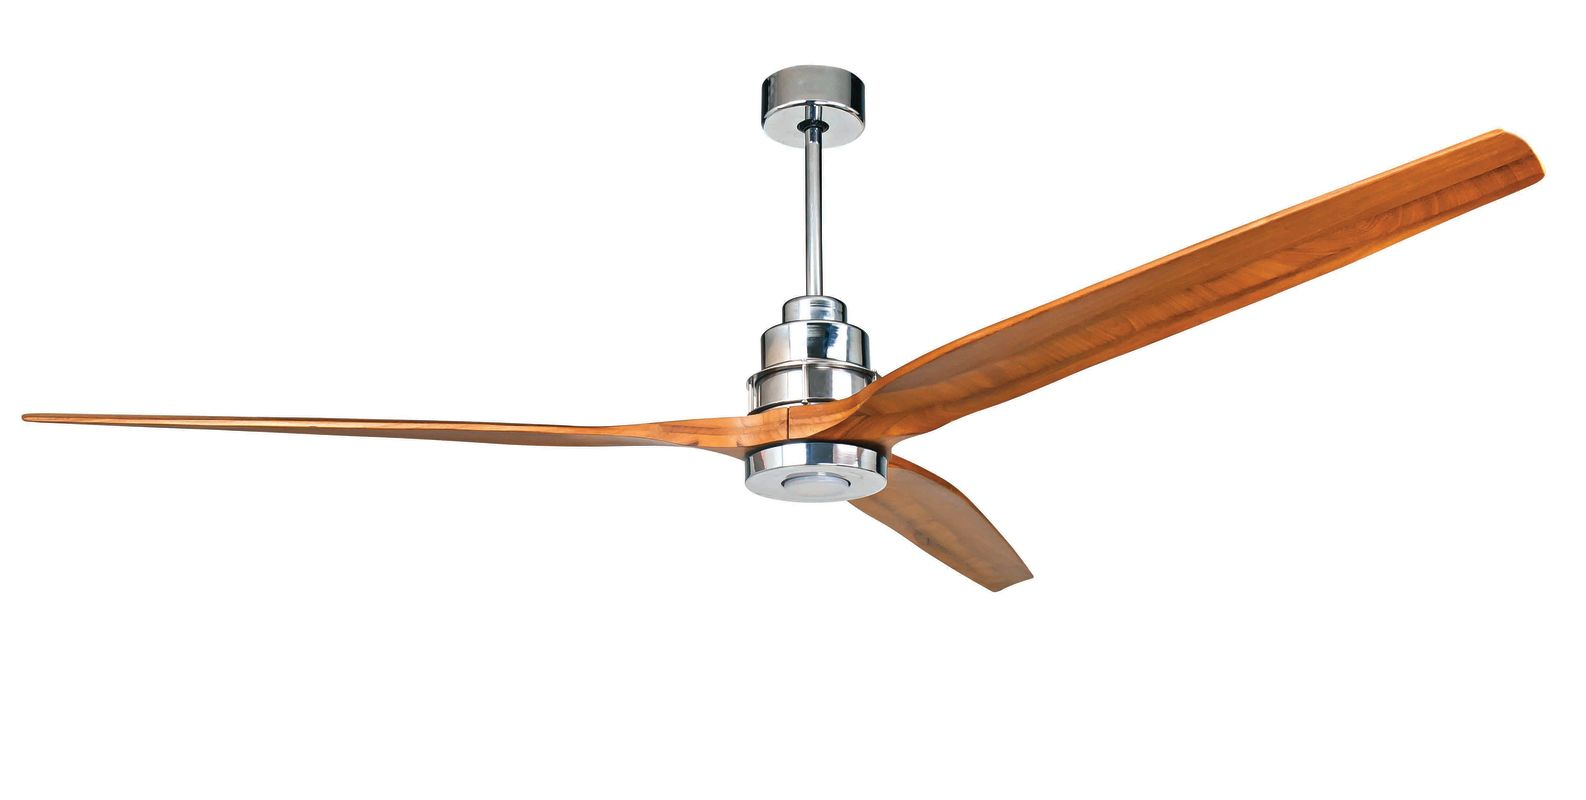 Outdoor ceiling fans should withstand more weather & conditions than indoor fans. Check guide to choose best reviewed ceiling fan for different outside use.